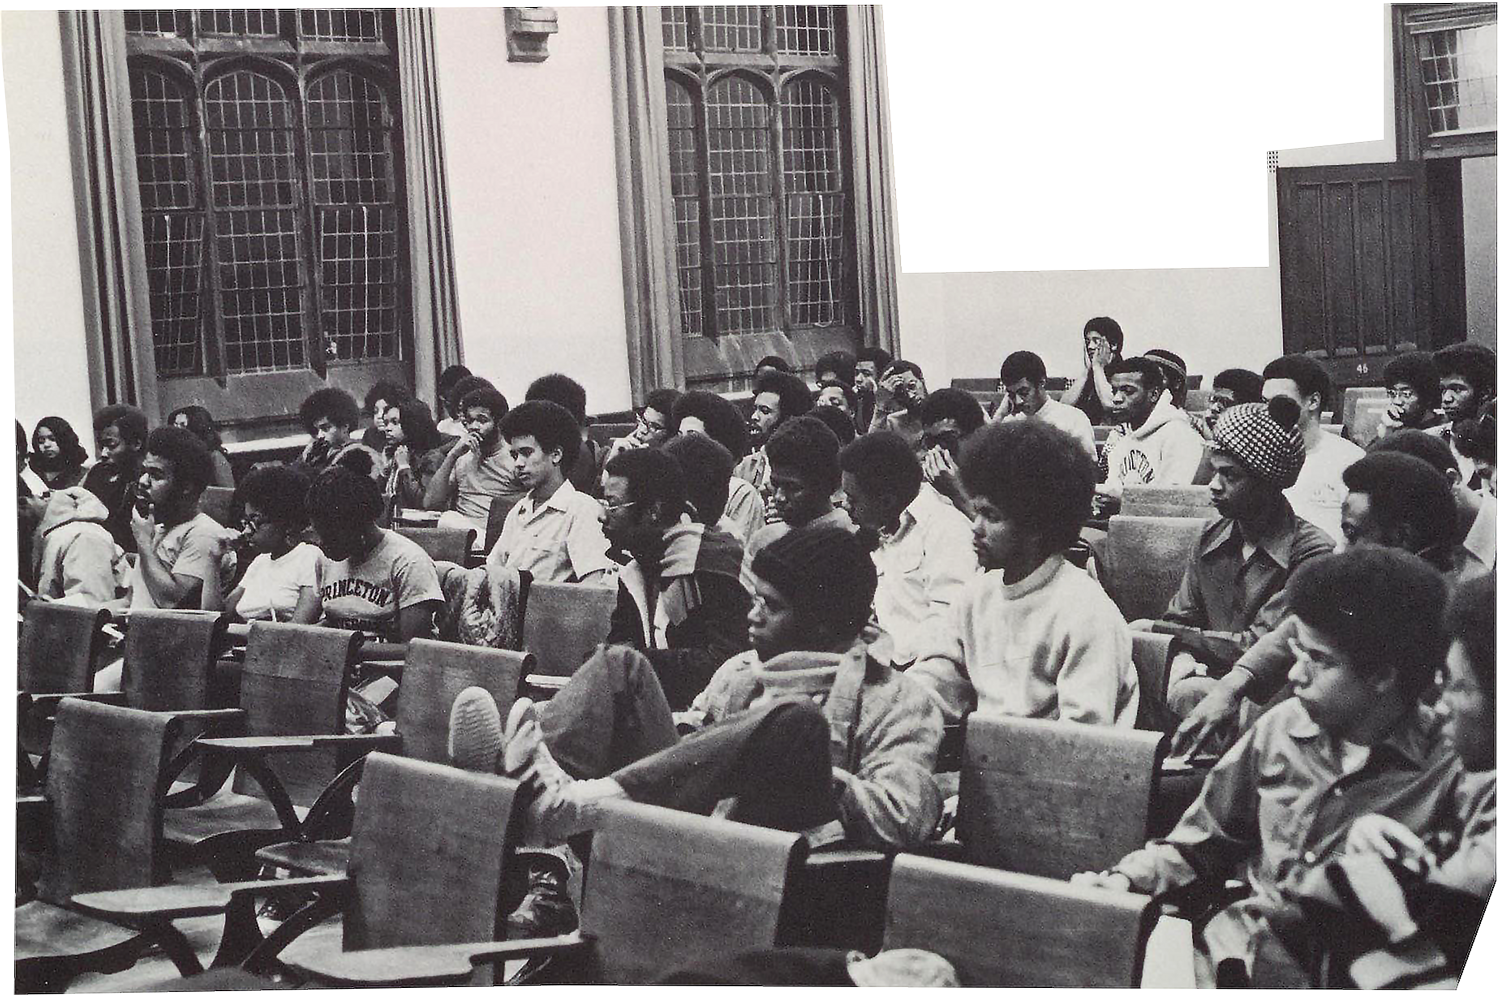 Members of the Association of Black Collegians sitting in a classroom in 1971.